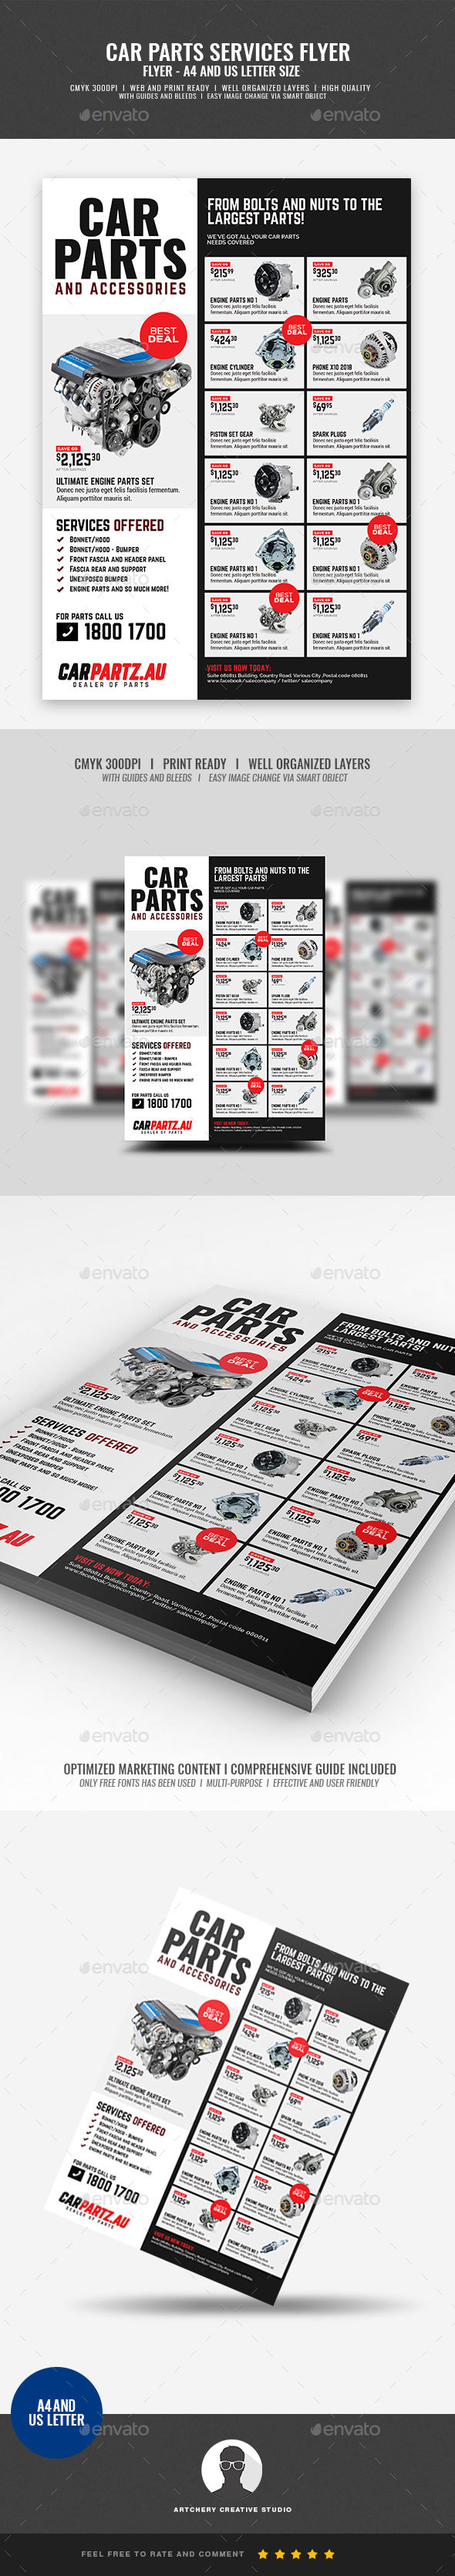 Car and Auto Supply Shop Flyer - Corporate Flyers